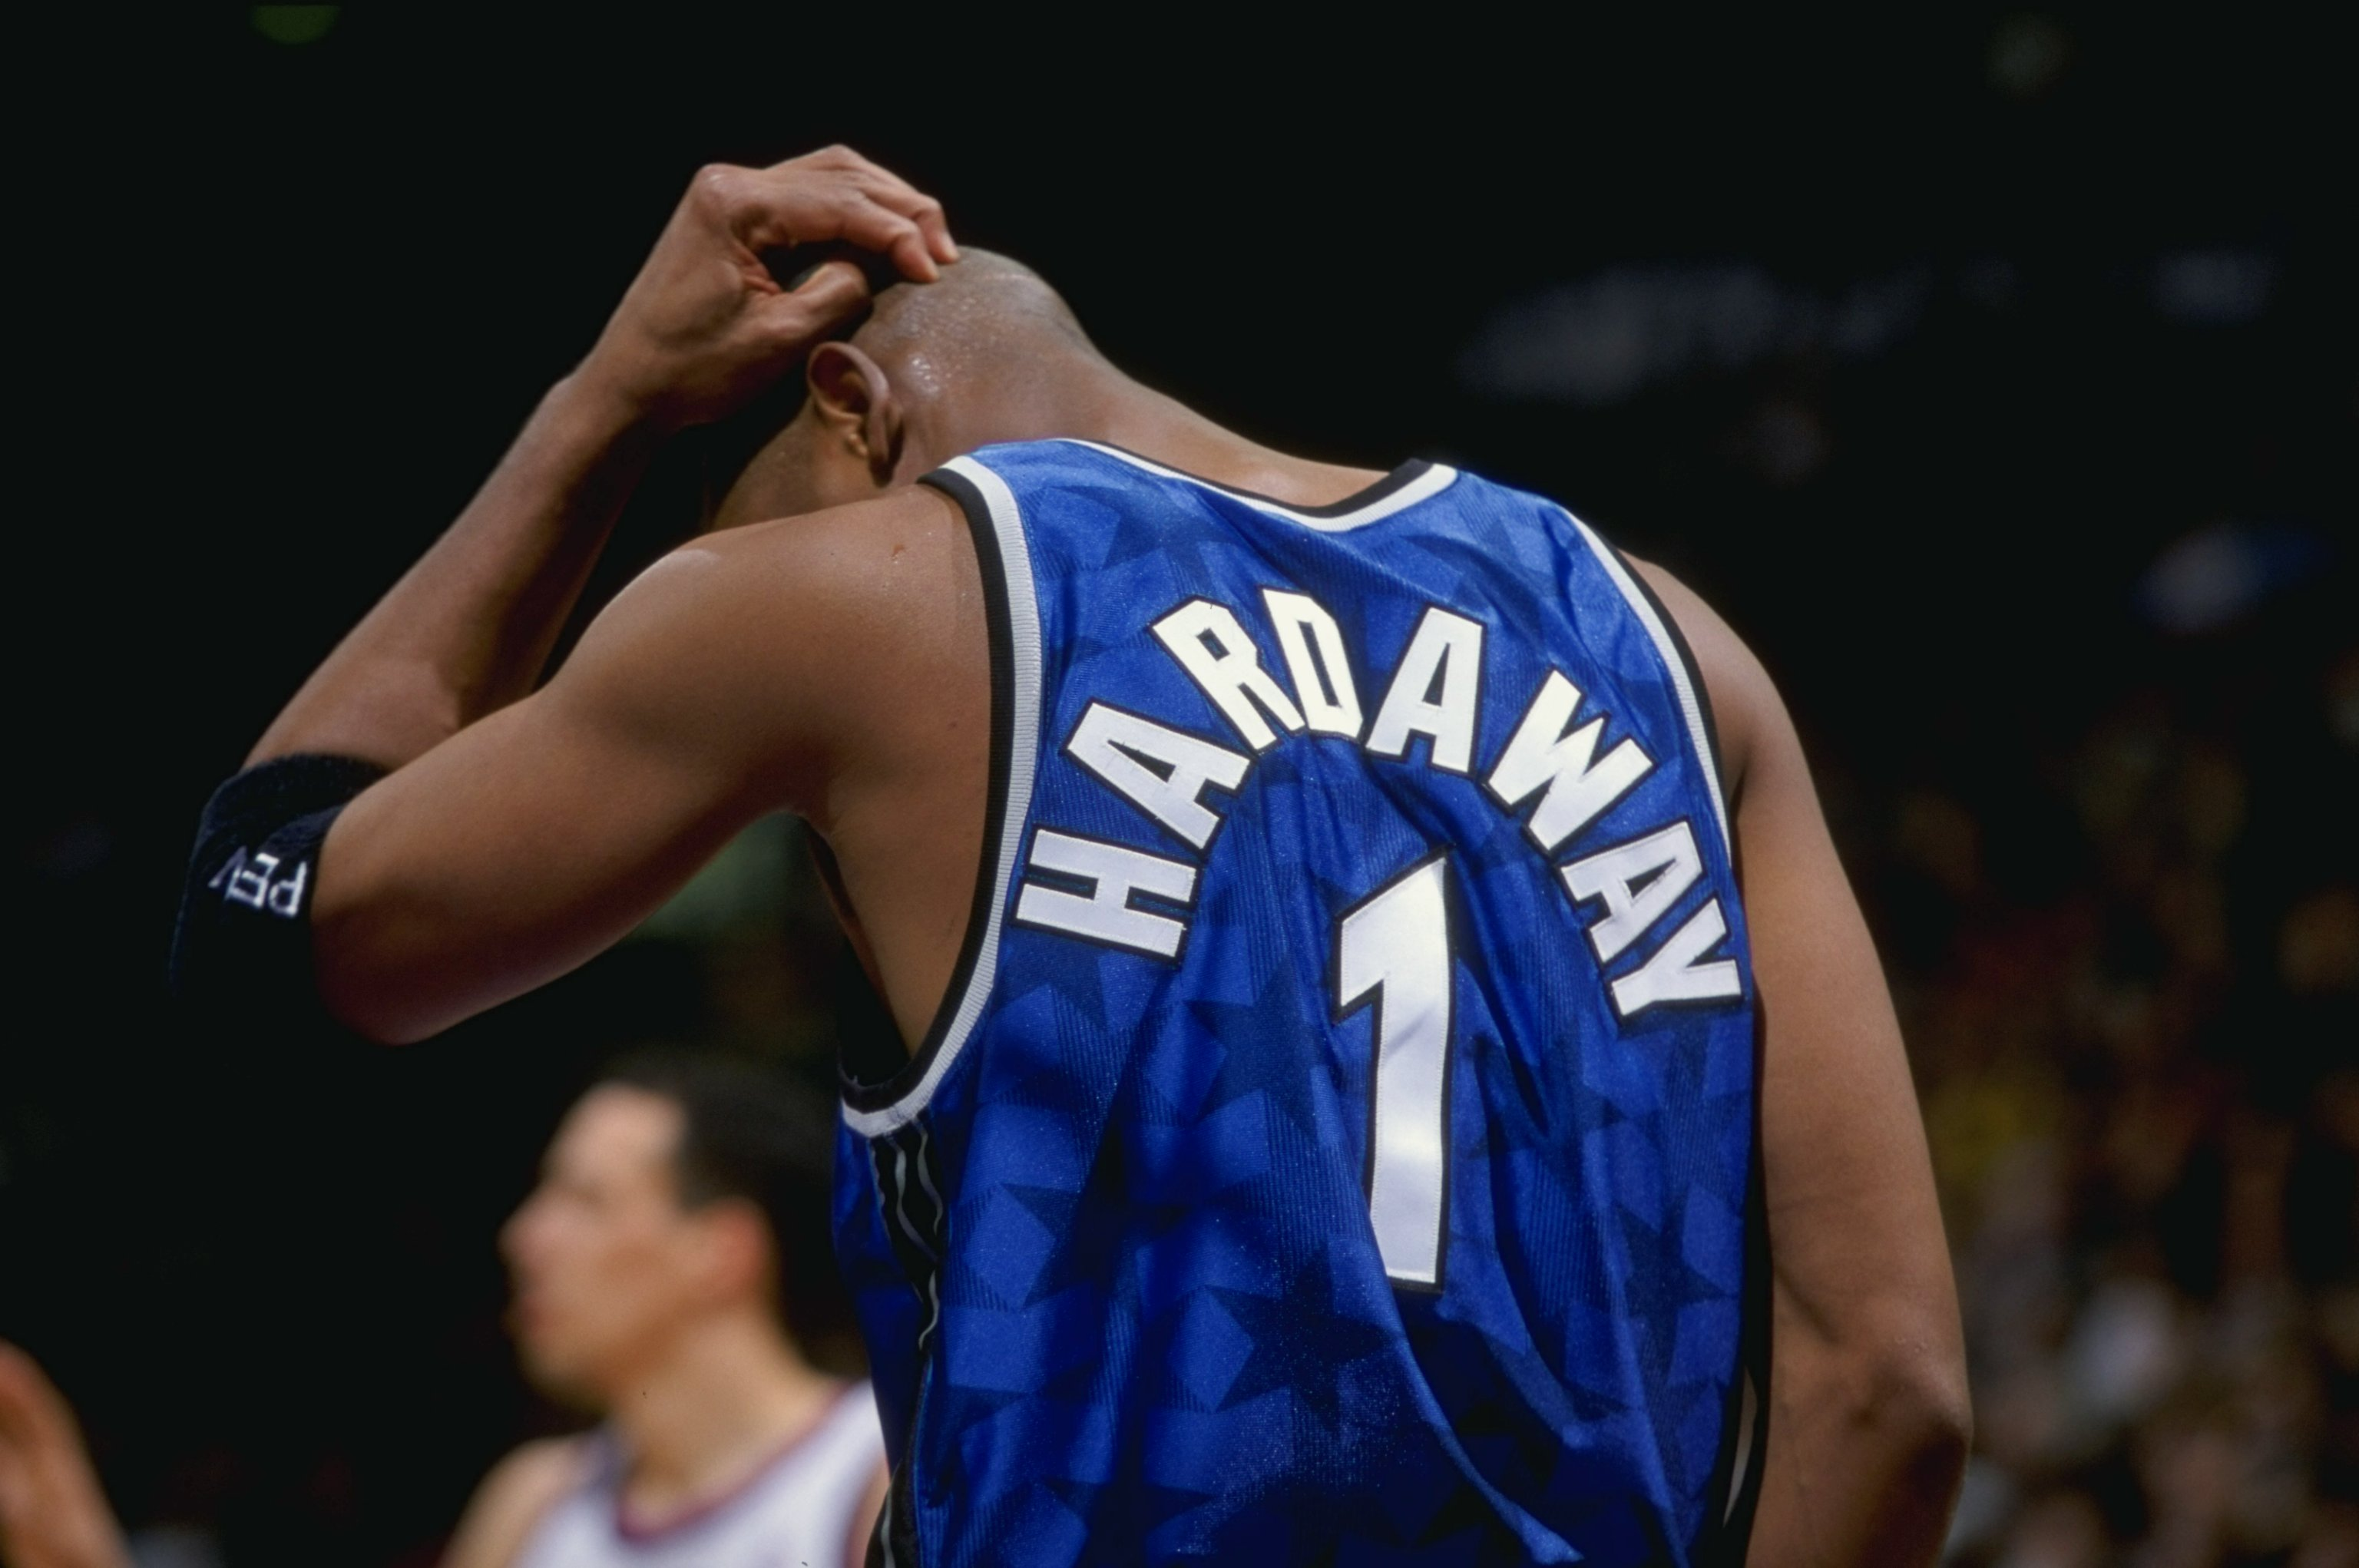 5 Mar 1999: Anfernee Hardaway #1 of the Orlando Magic looks down during the game against the Toronto Raptors at the Air Canada Centre in Toronto, Canada. The Magic defeated the Raptors 89-84.    Mandatory Credit: Robert Laberge  /Allsport